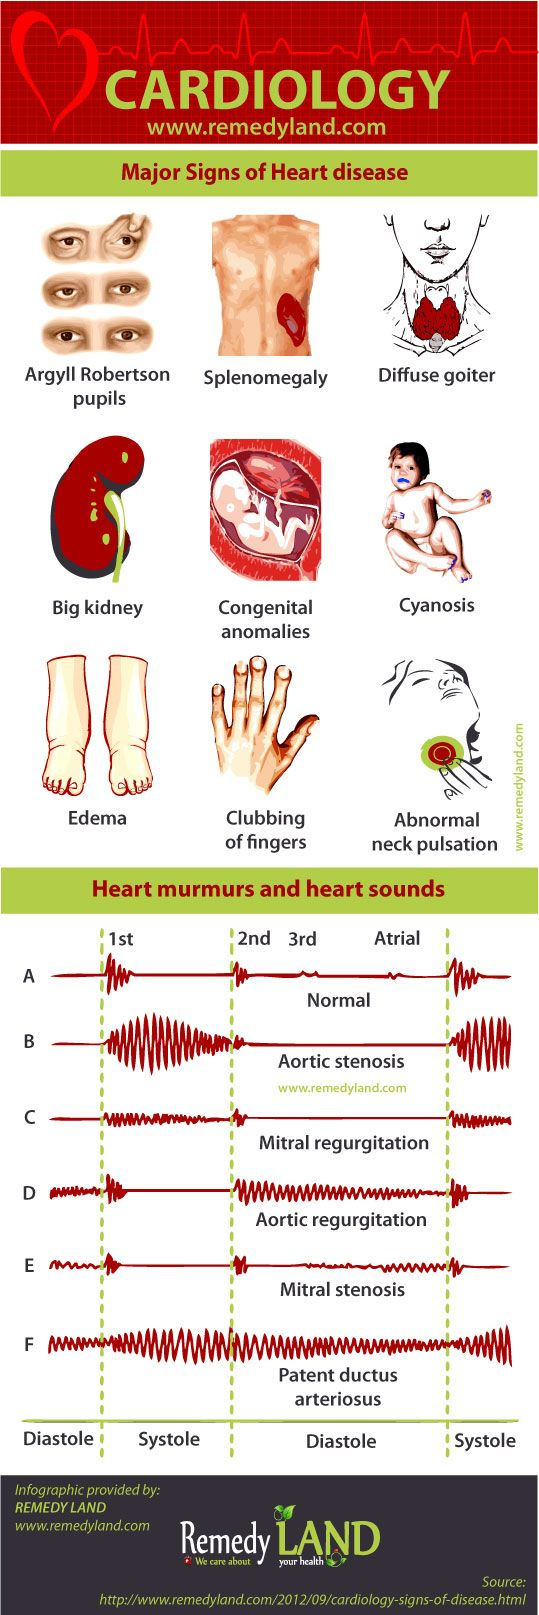 Coronary artery condition, congestive heart failure, heart attack, every form of heart problem demands different remedy but can share identical symptoms